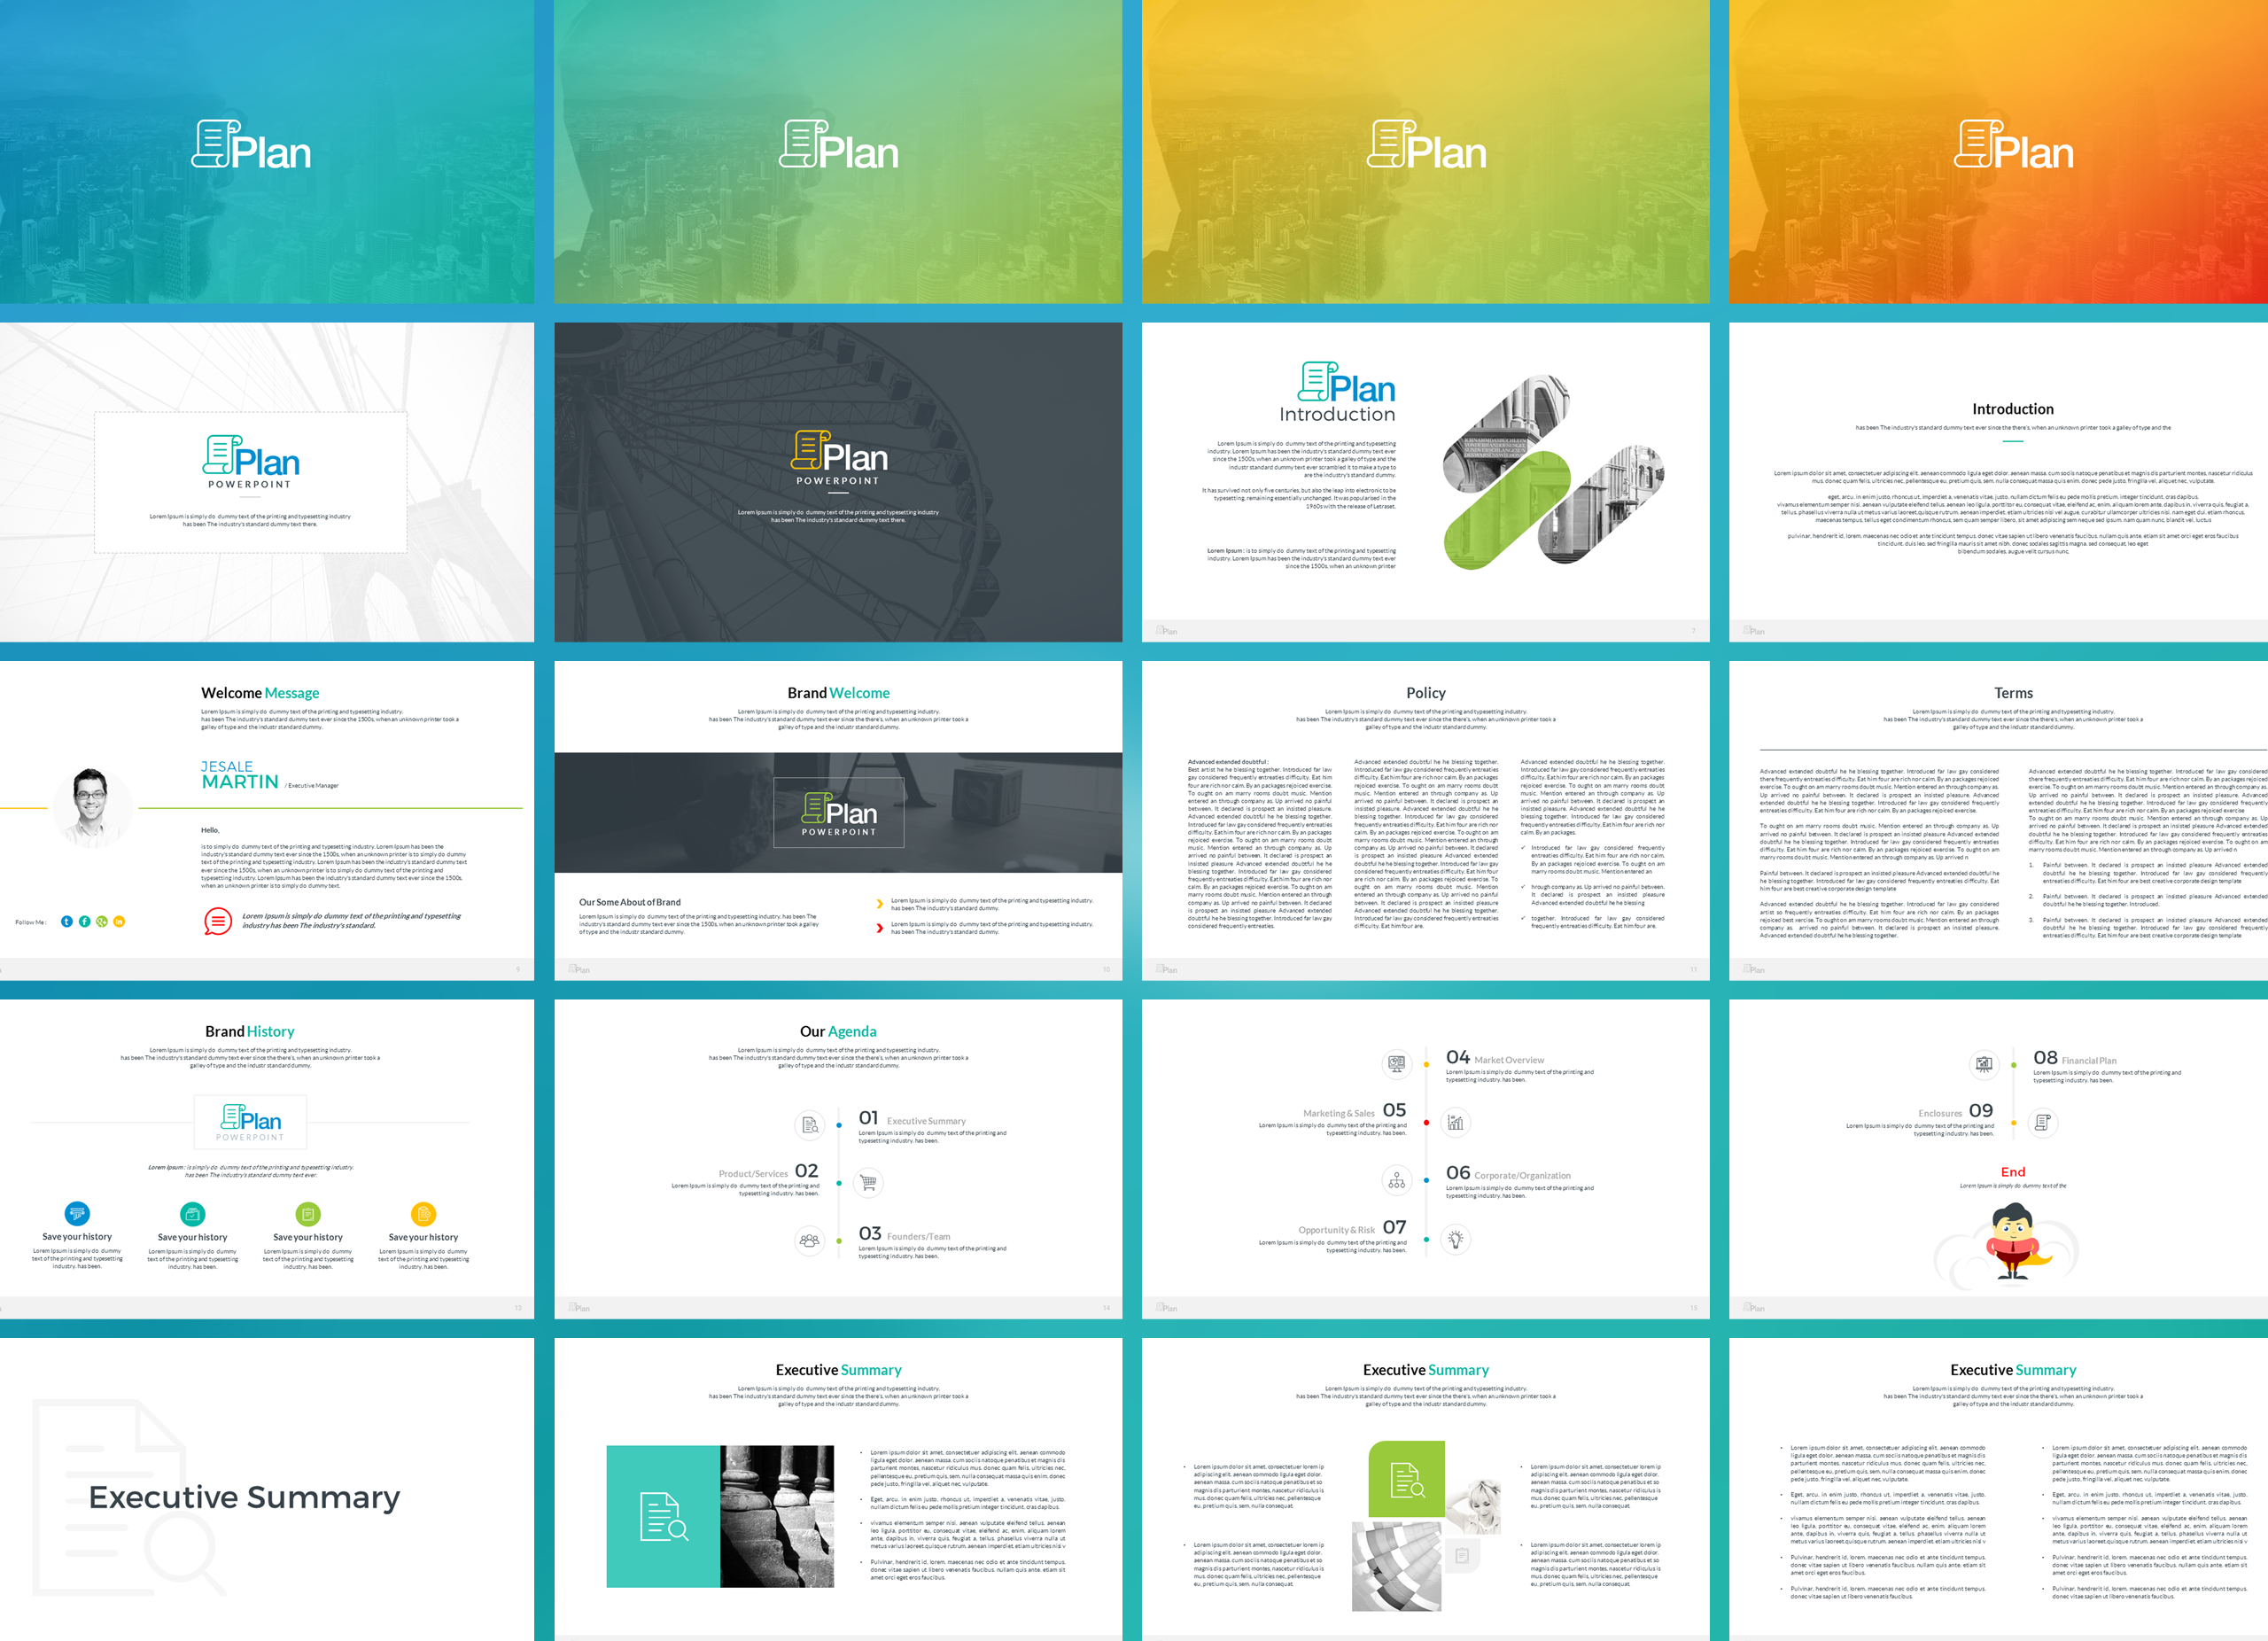 Business Plan PowerPoint Presentation Template example image 2